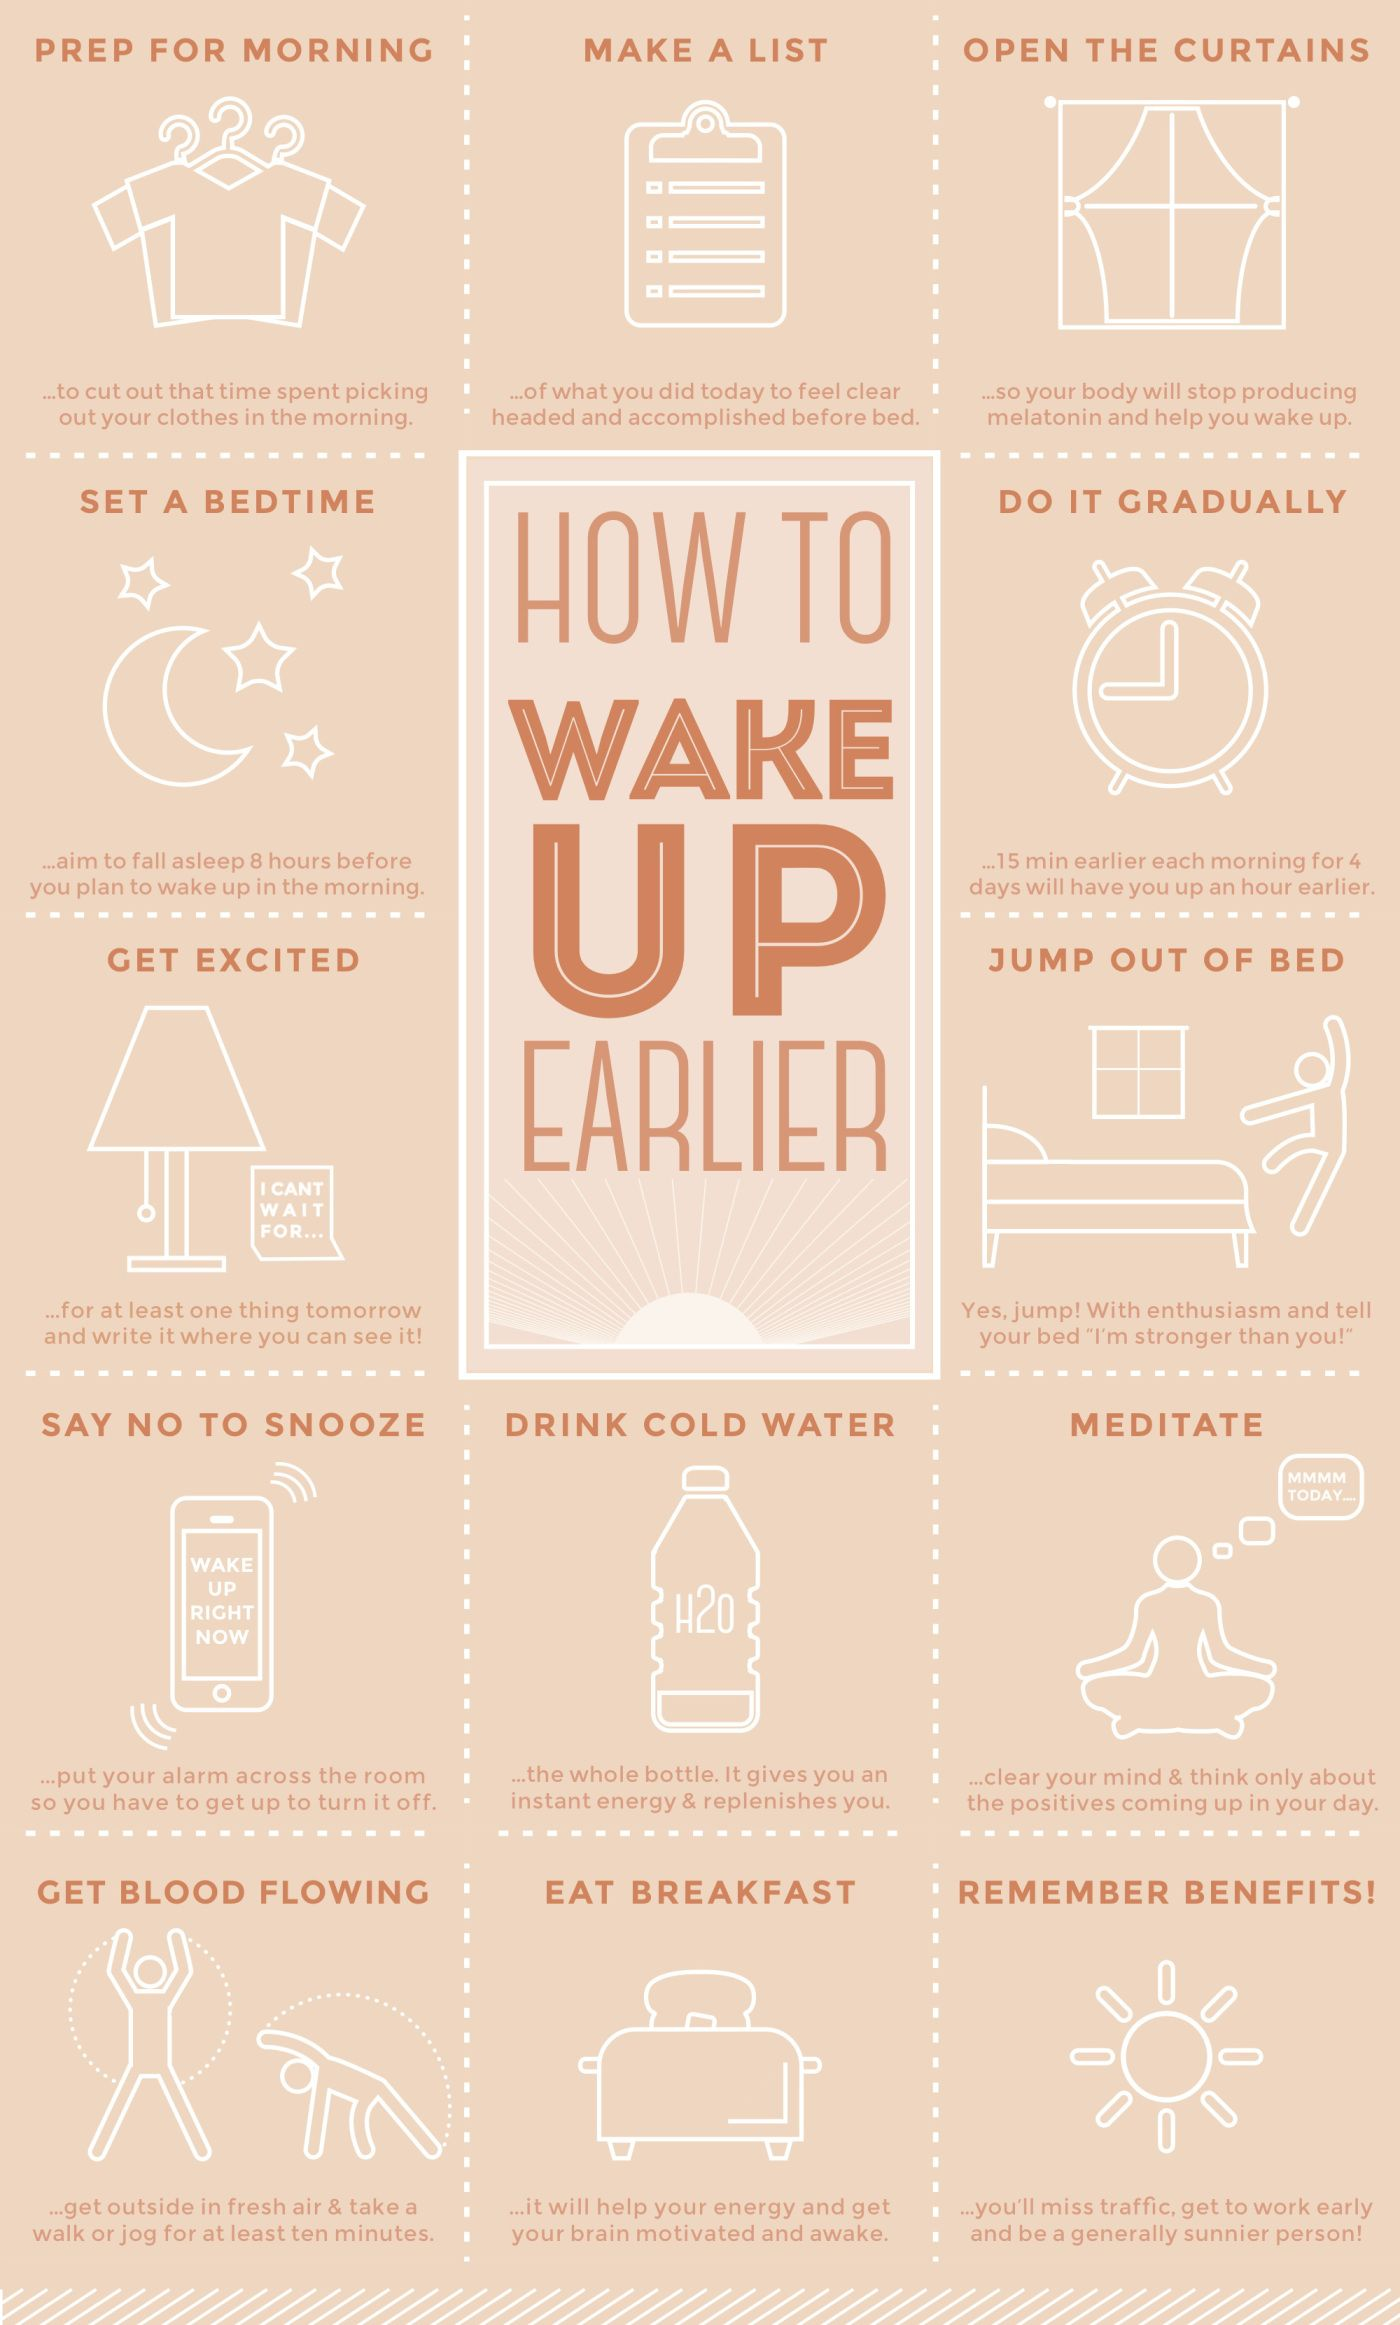 Waking up early smarter healthier more productive